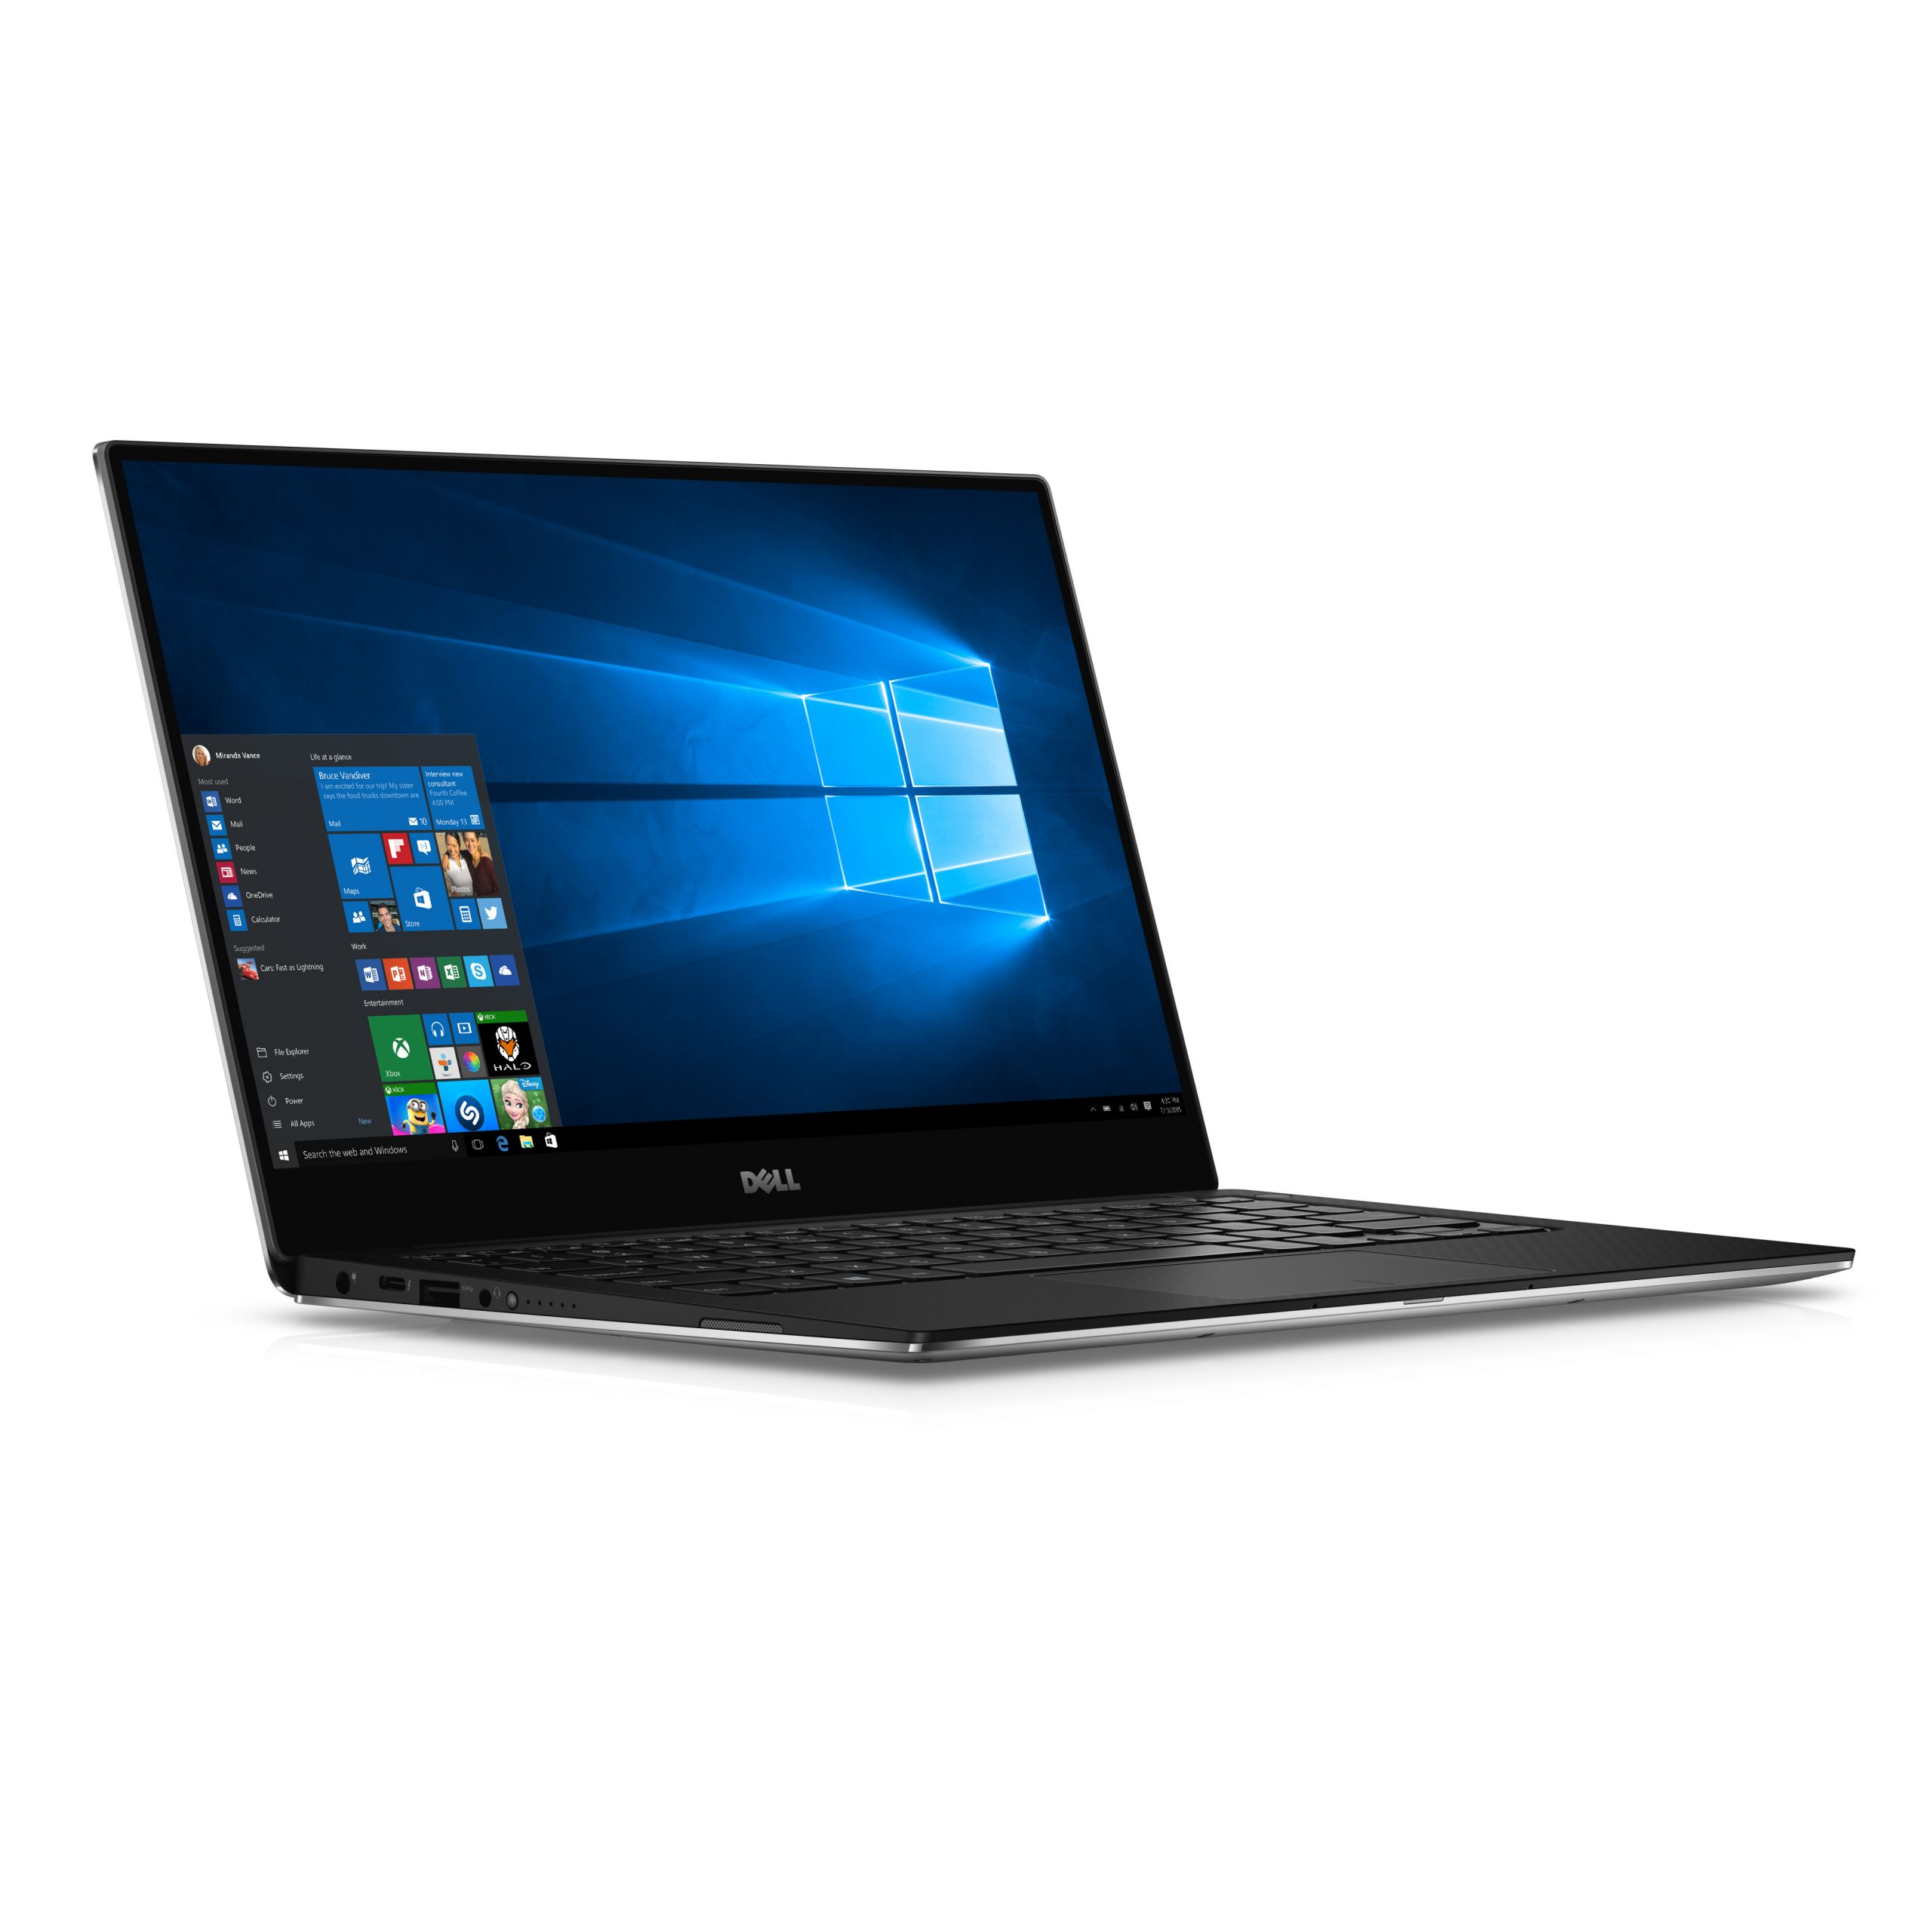 The Dell XPS 13 gets an interior redesign